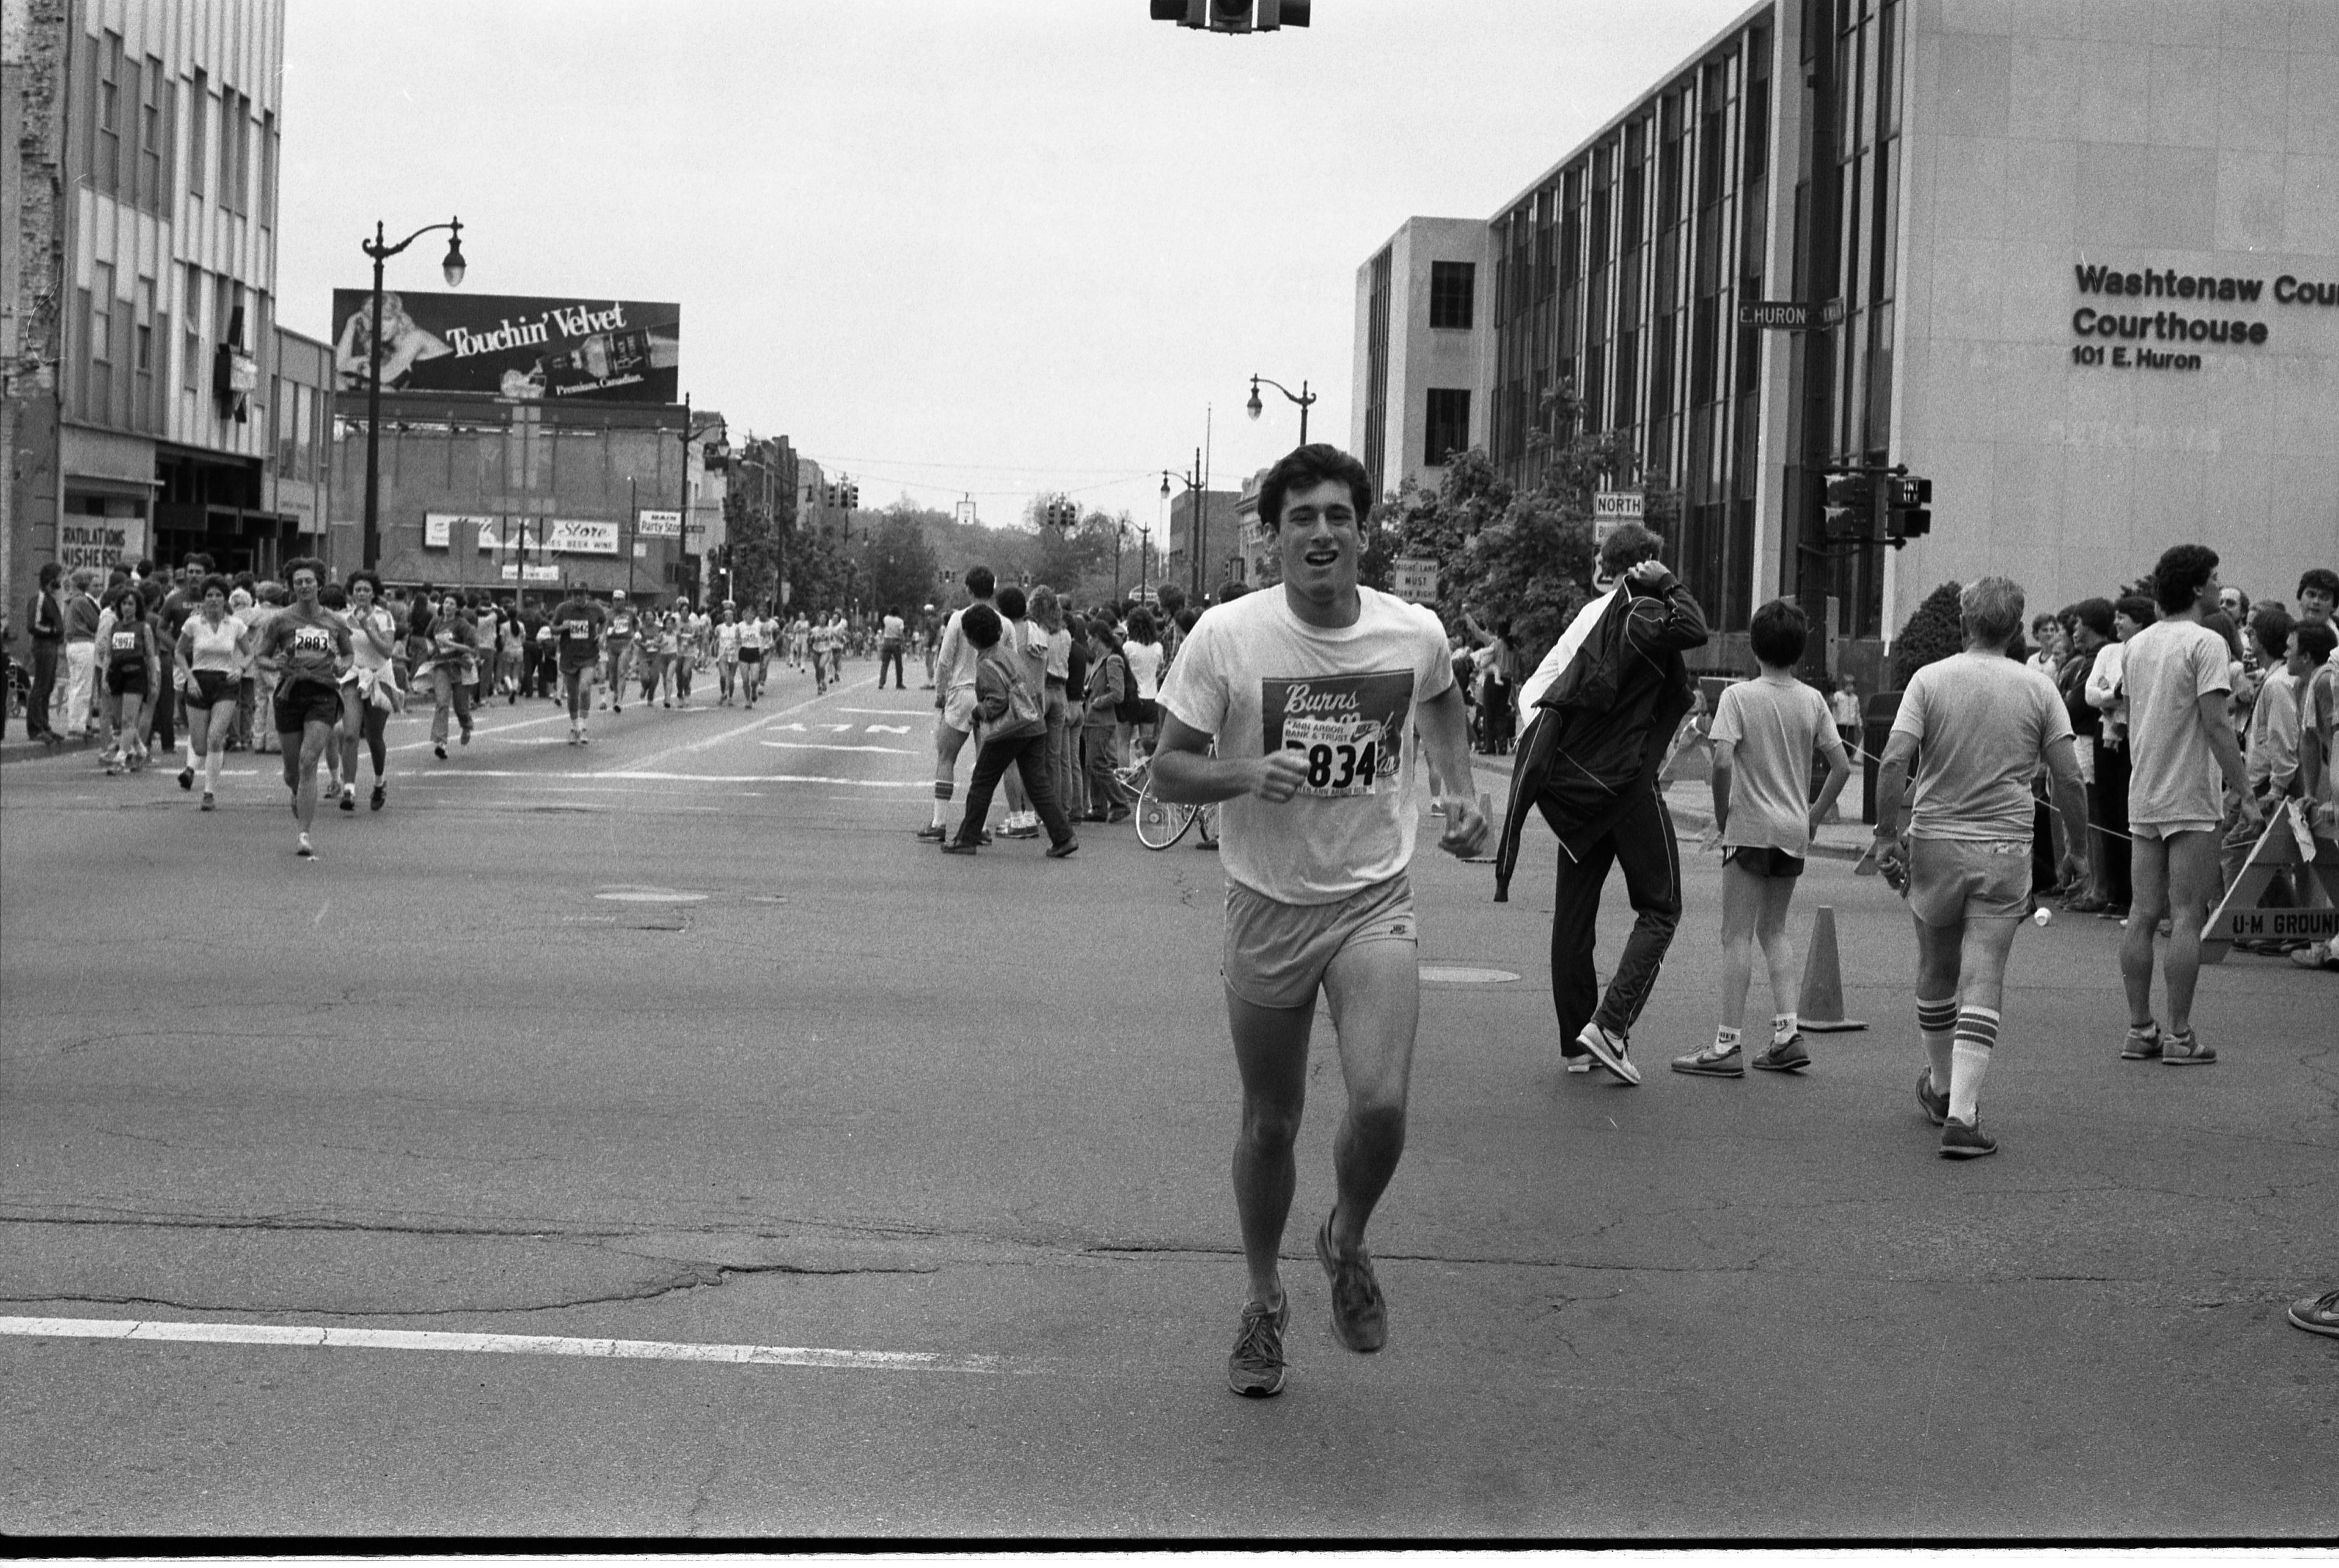 Alan Fanger, Ann Arbor News Reporter, Participates In The Dexter-Ann Arbor Run, May 29, 1983 image